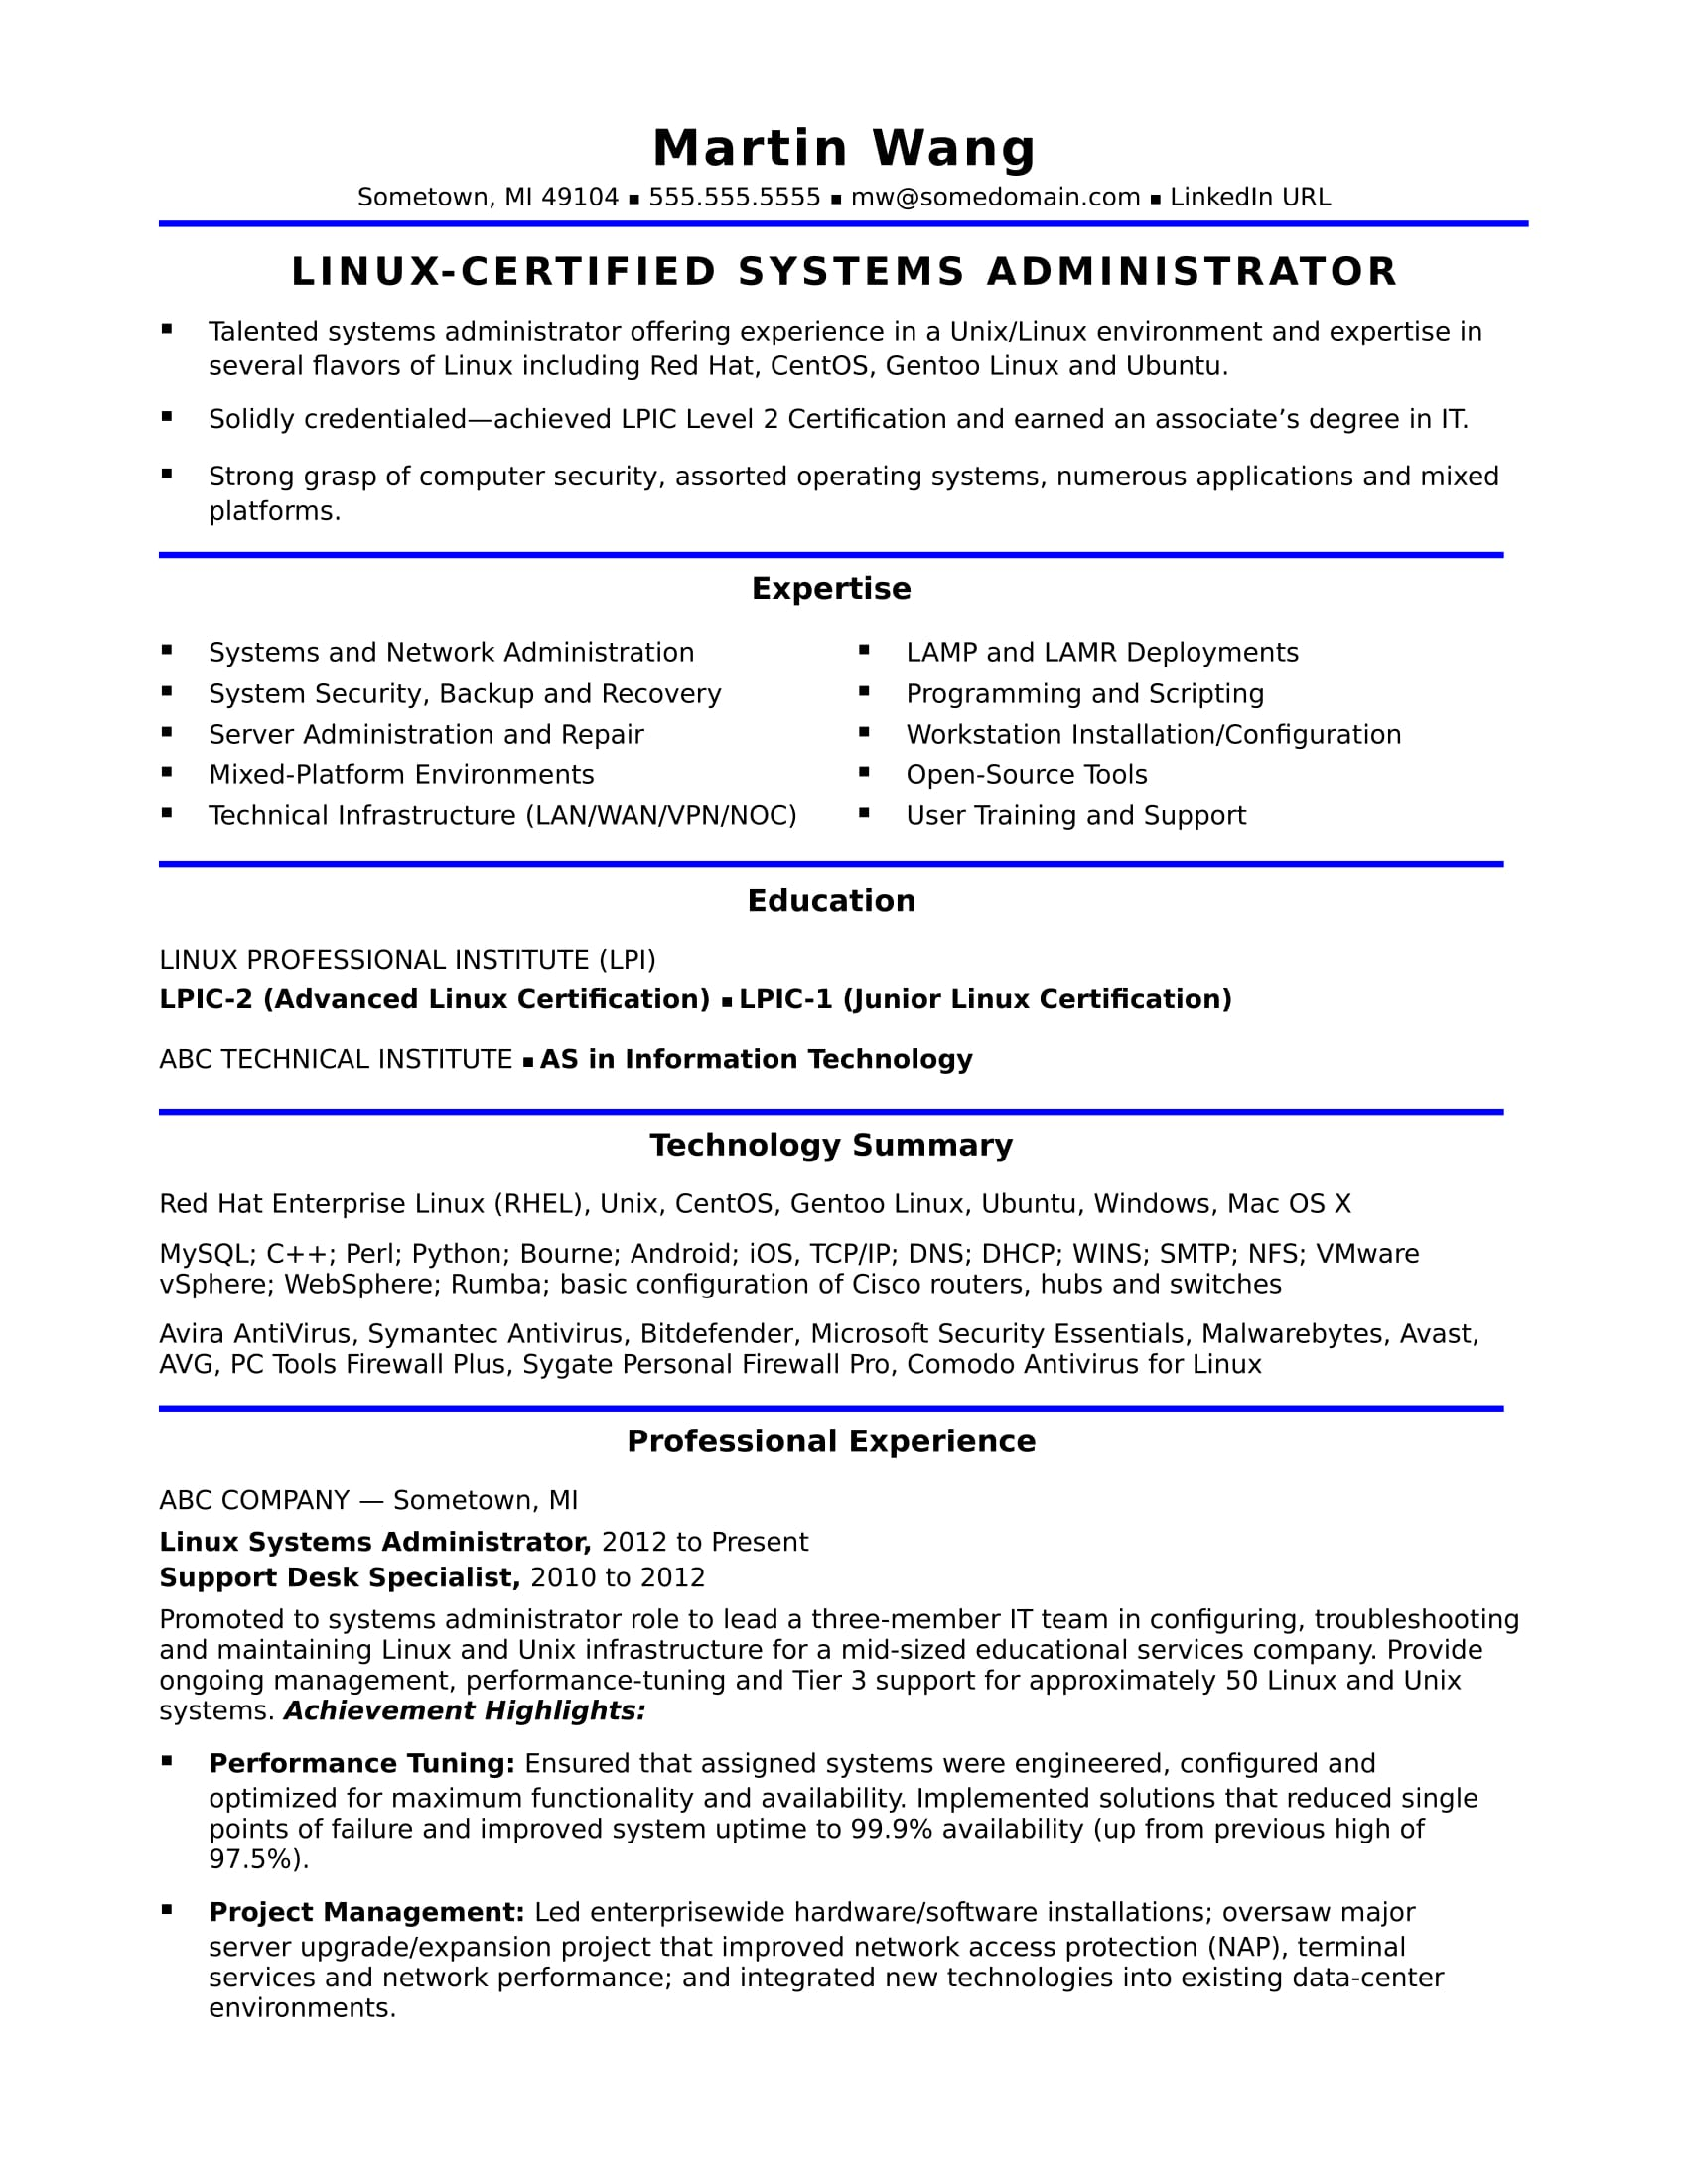 sample resume for midlevel systems administrator monster linux year experience trending Resume Linux Administrator Resume 4 Year Experience